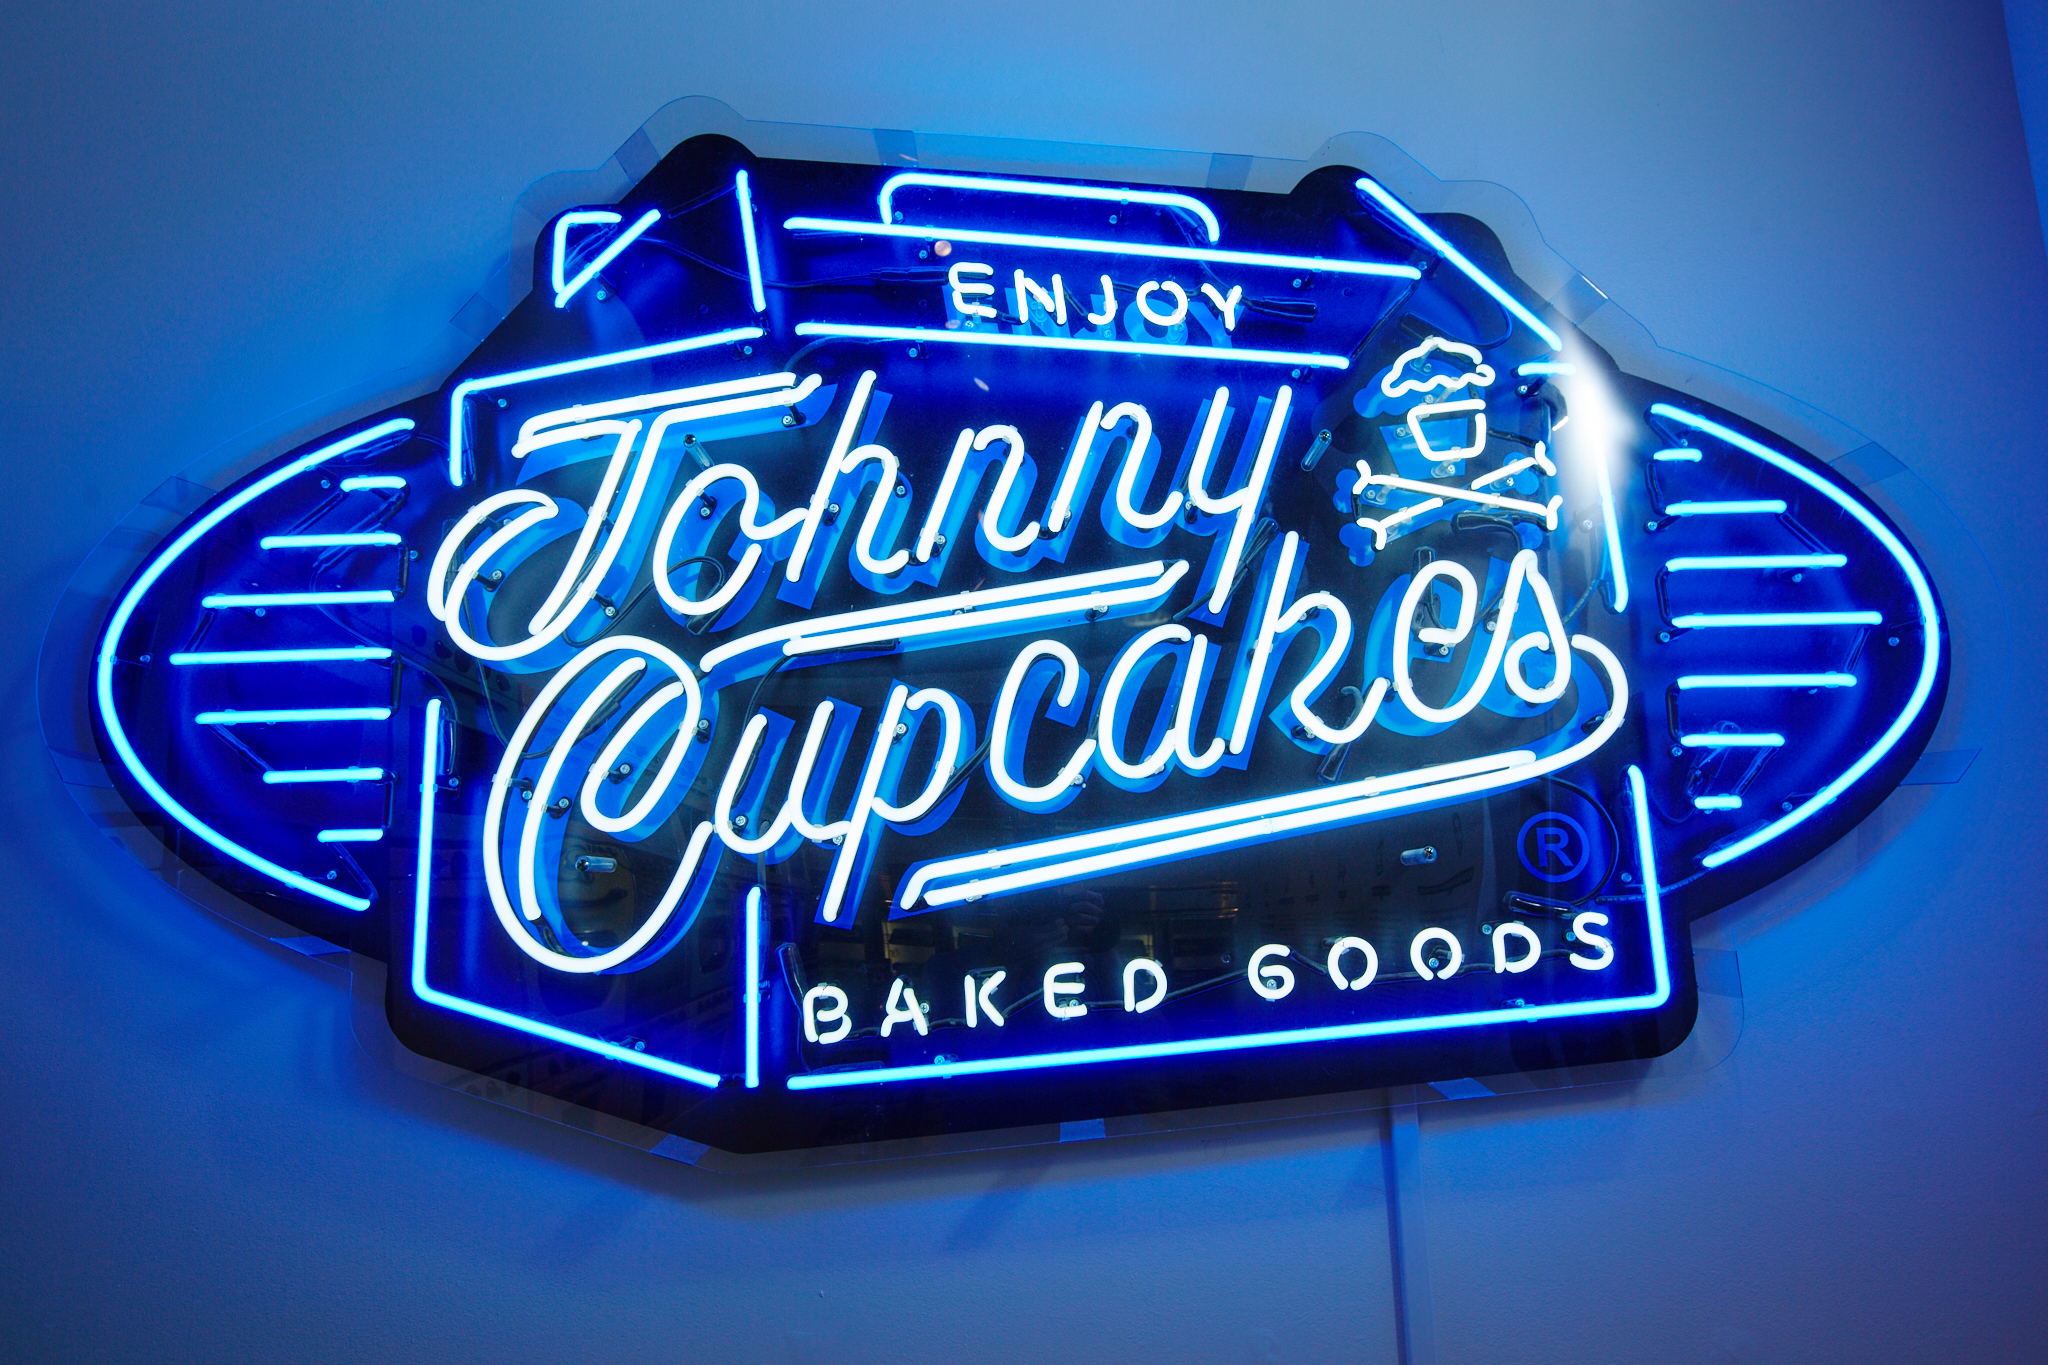 http://www.designercon.com/wp-content/uploads/2017/09/Johnny-Cupcakes-Boston-279-Newbury-Street-neon-sign.jpg